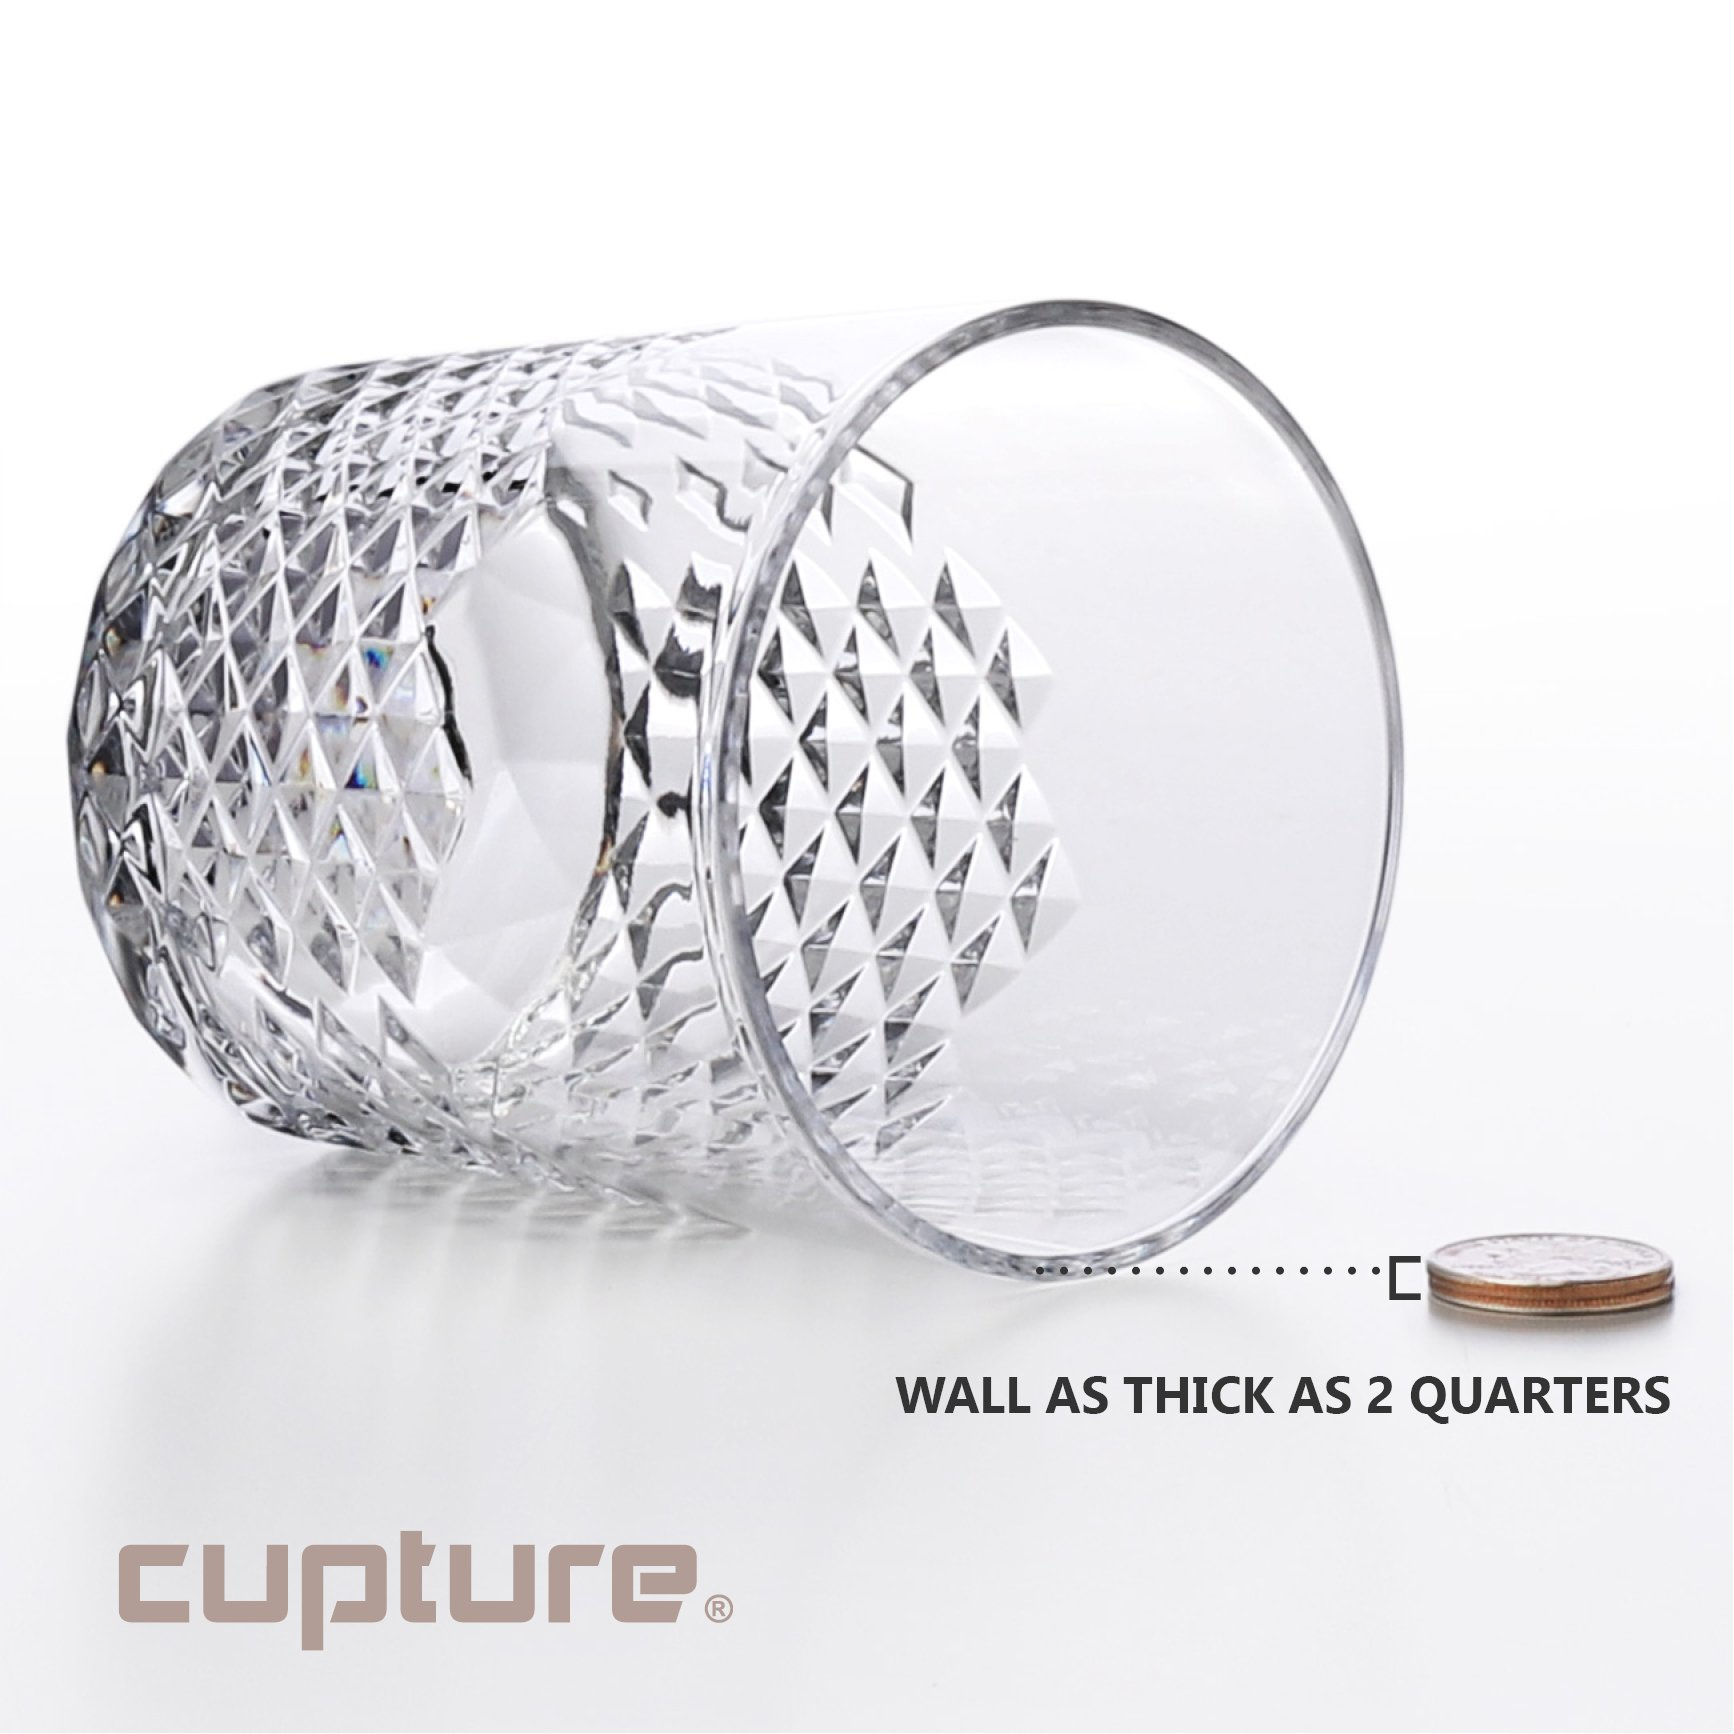 Cupture Diamond Plastic Tumblers BPA Free, 24 oz / 14 oz, 8-Pack (Clear) by Cupture (Image #6)